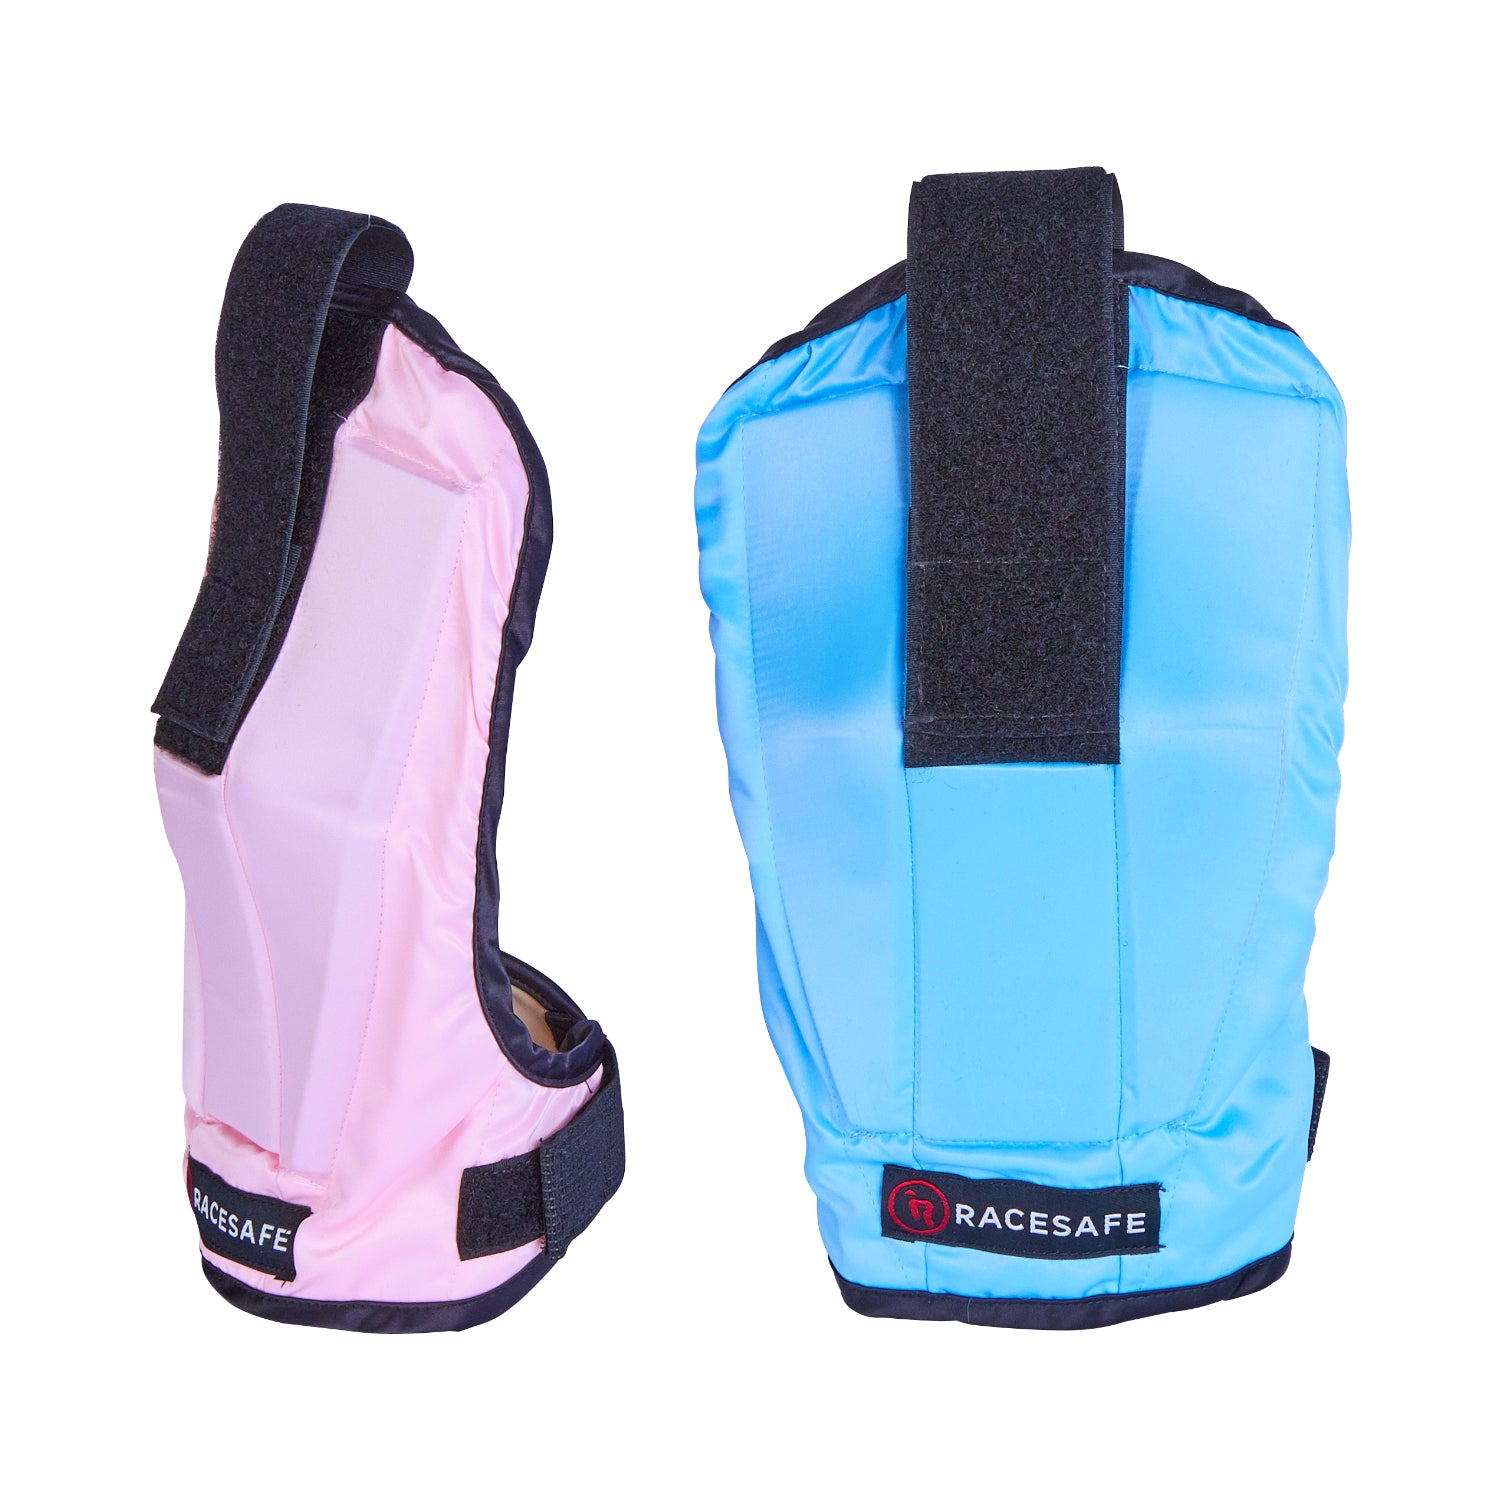 RS Shoulder Protectors - Racesafe